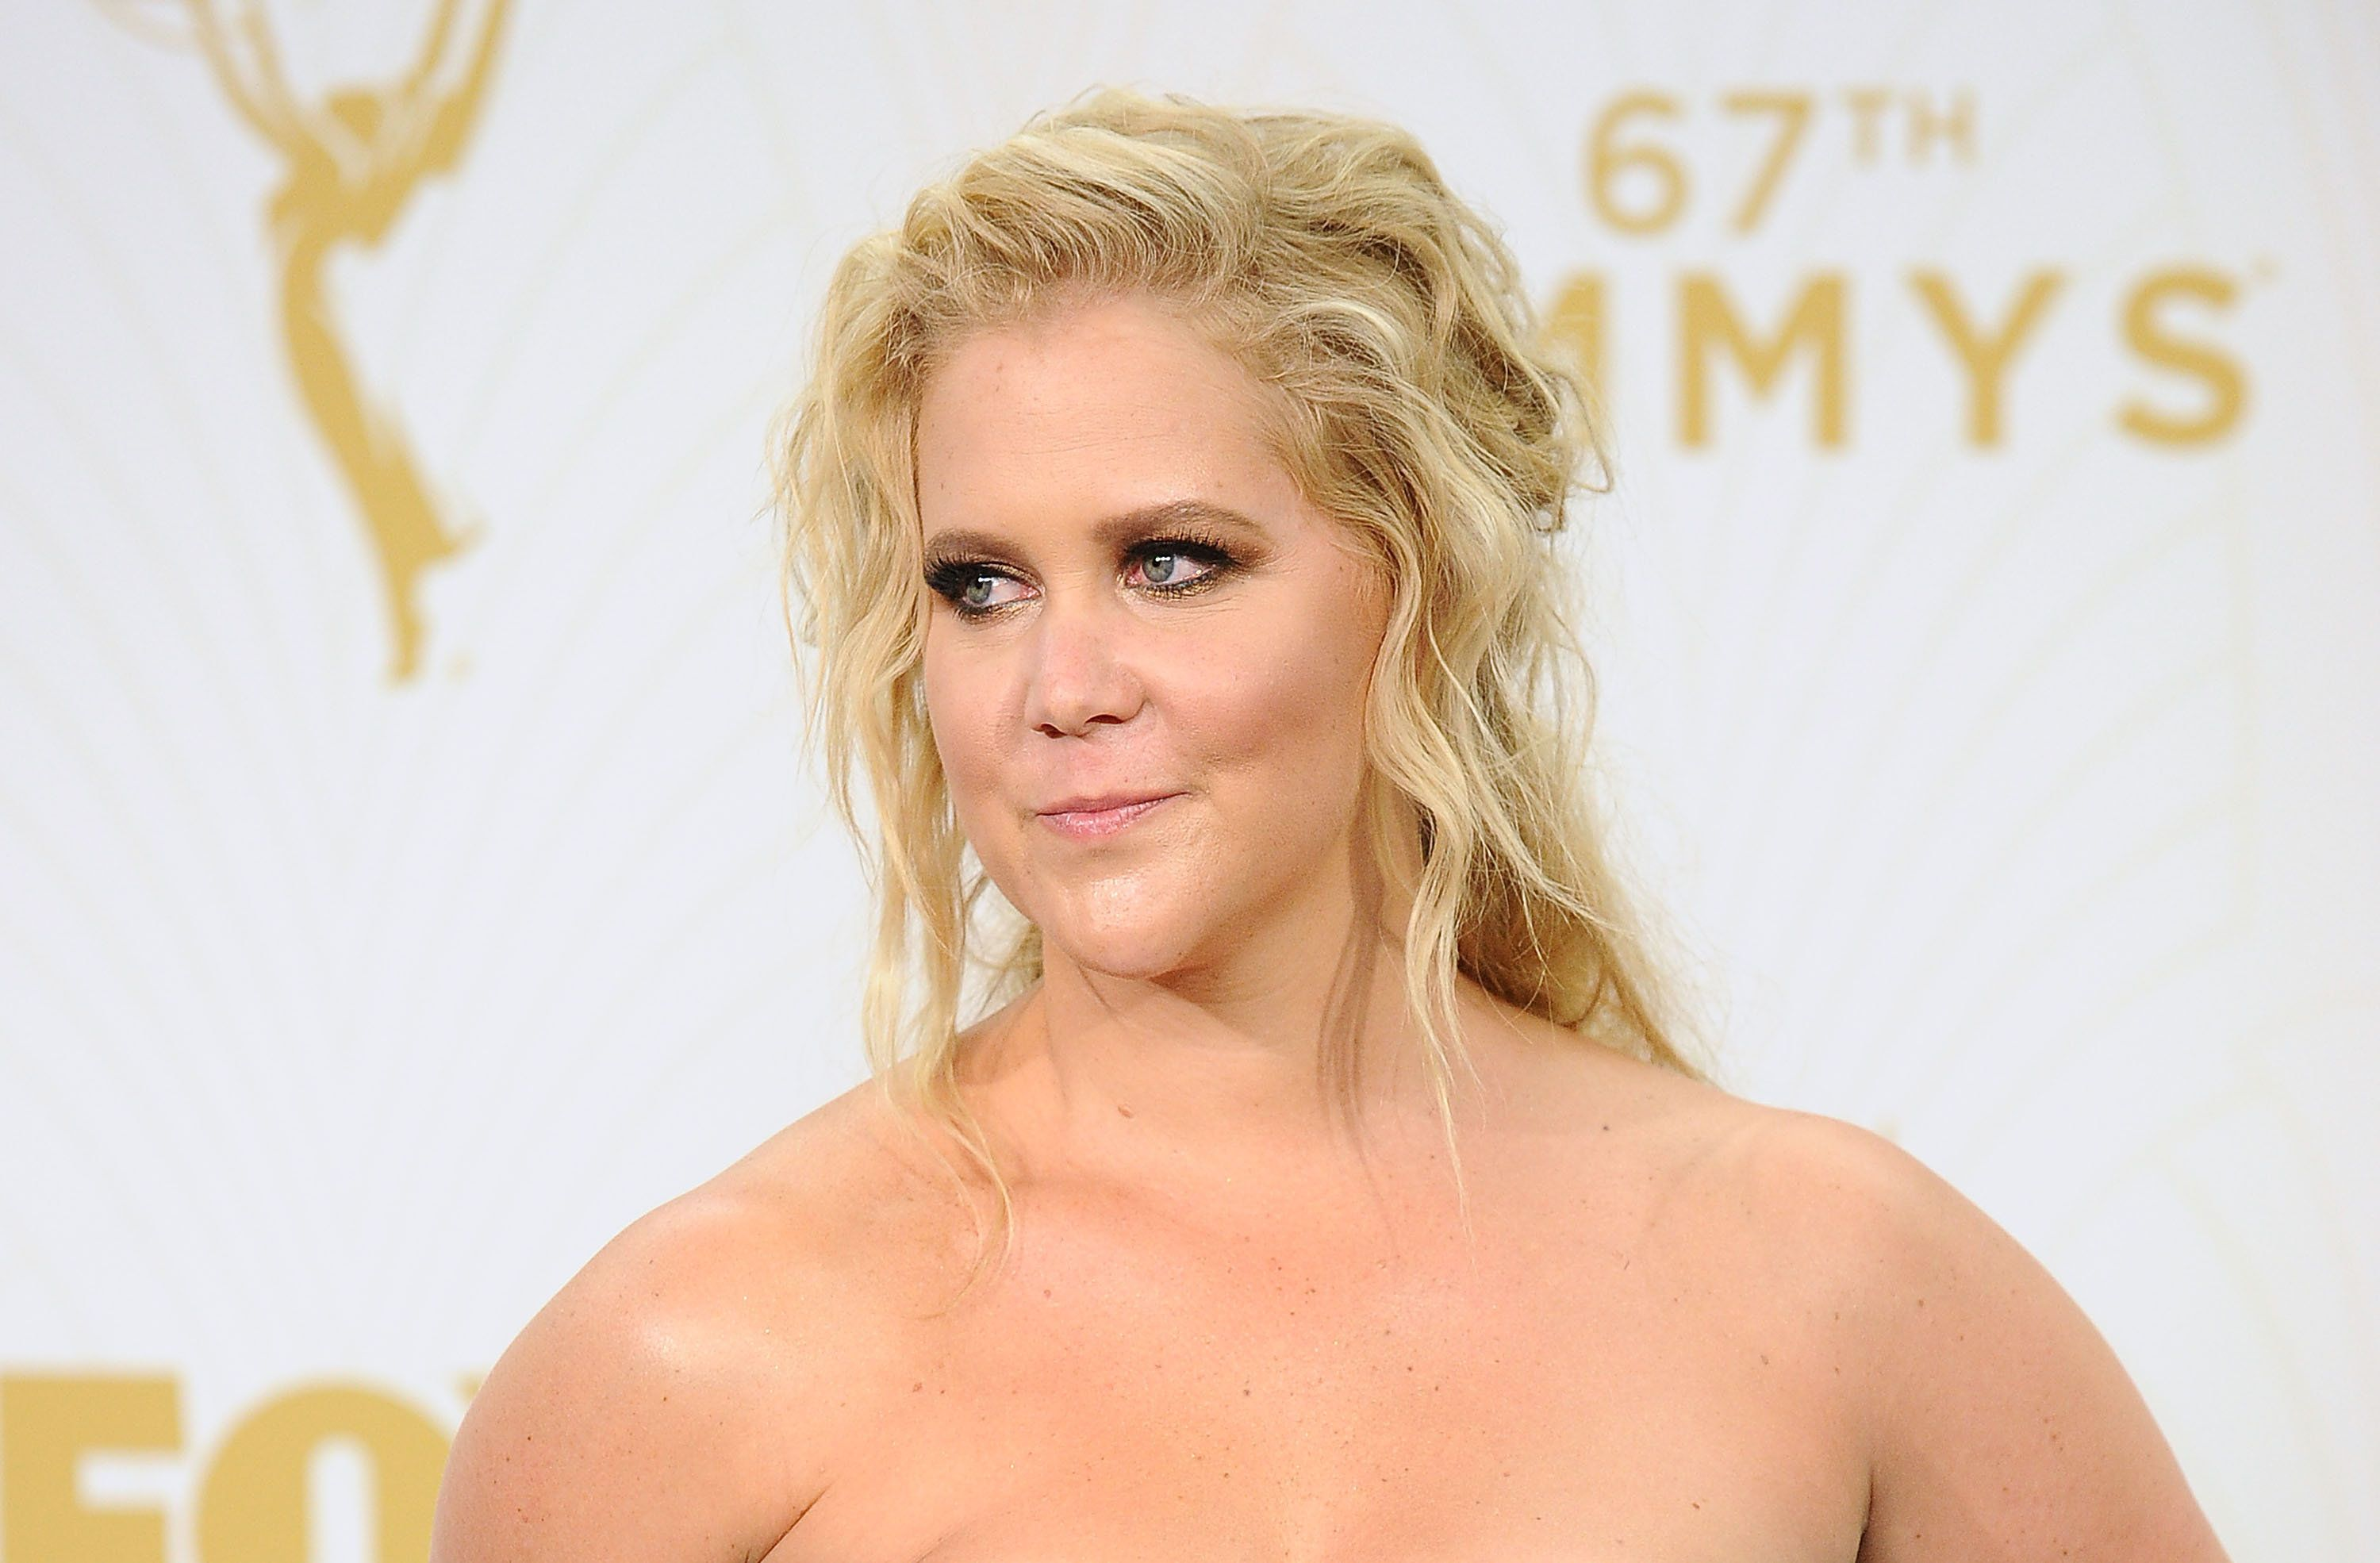 LOS ANGELES, CA - SEPTEMBER 20:  Actress Amy Schumer poses in the press room at the 67th annual Primetime Emmy Awards at Microsoft Theater on September 20, 2015 in Los Angeles, California.  (Photo by Jason LaVeris/FilmMagic)